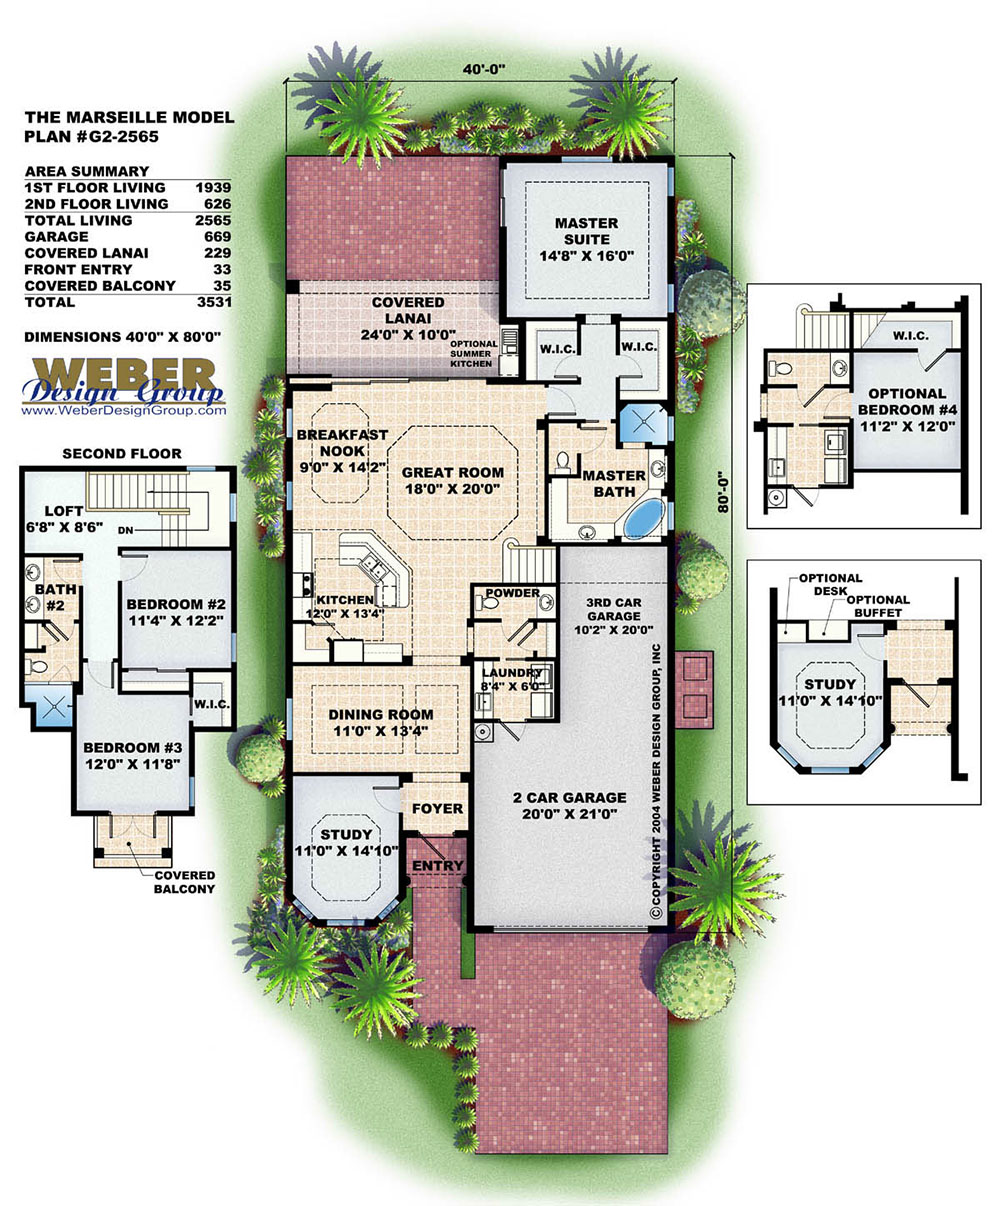 24 x 35 house plans house interior for Weber design